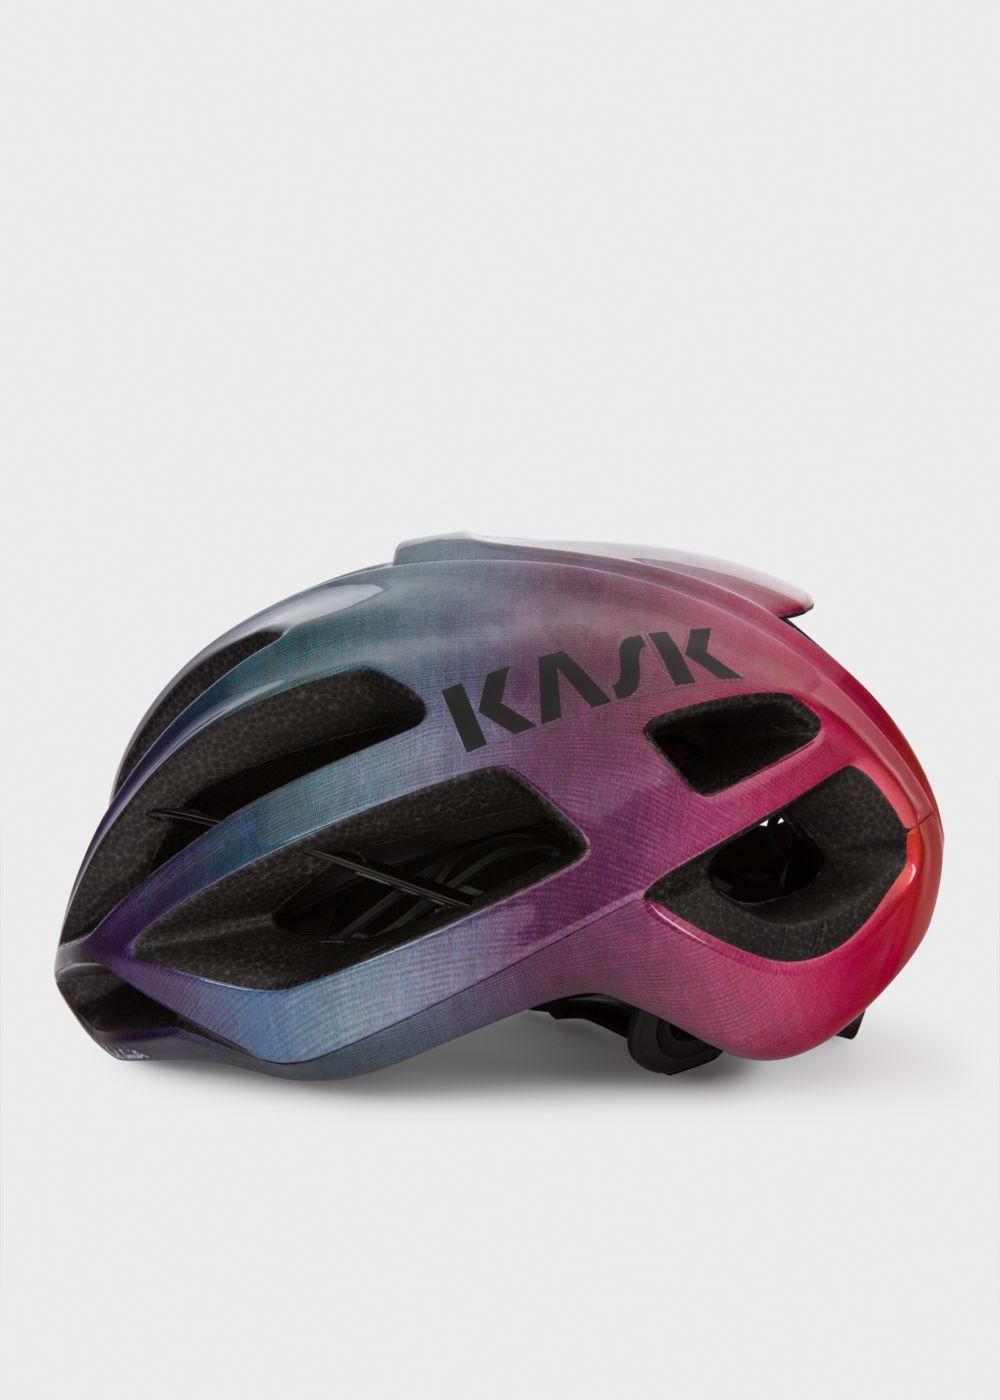 rnsr-kask-pshelm-1_alternative_